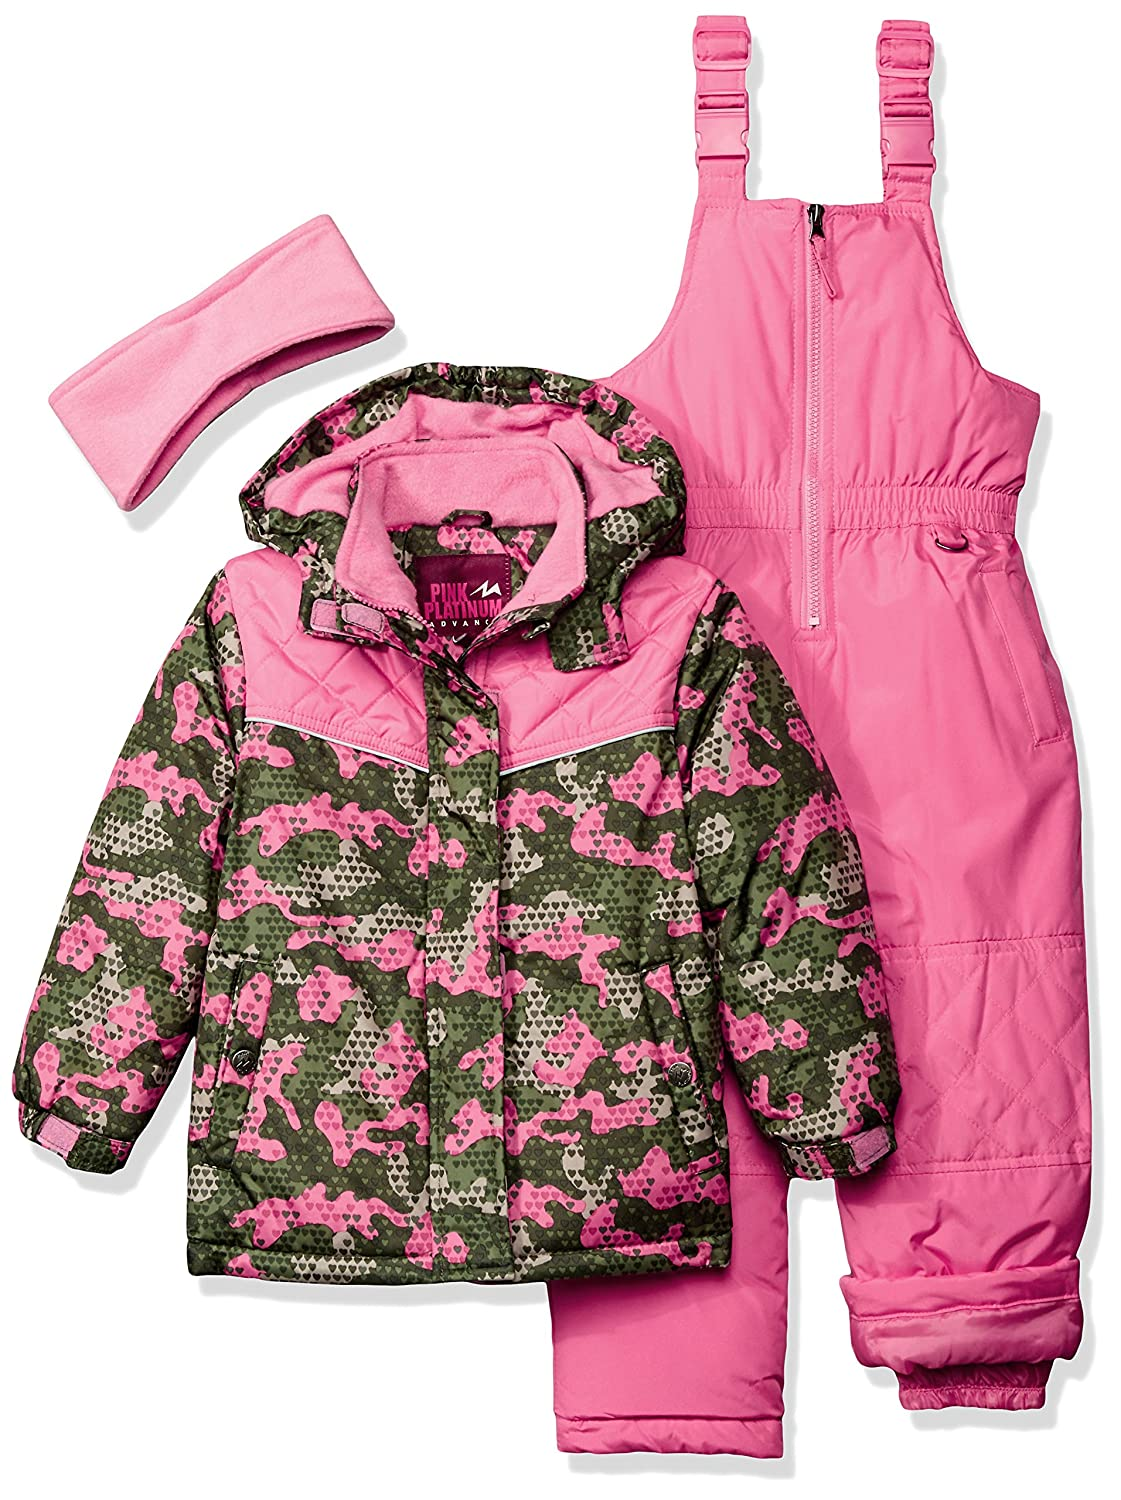 snowsuit pink better ca accessories amazon girls platinum print camo heart clothing dp